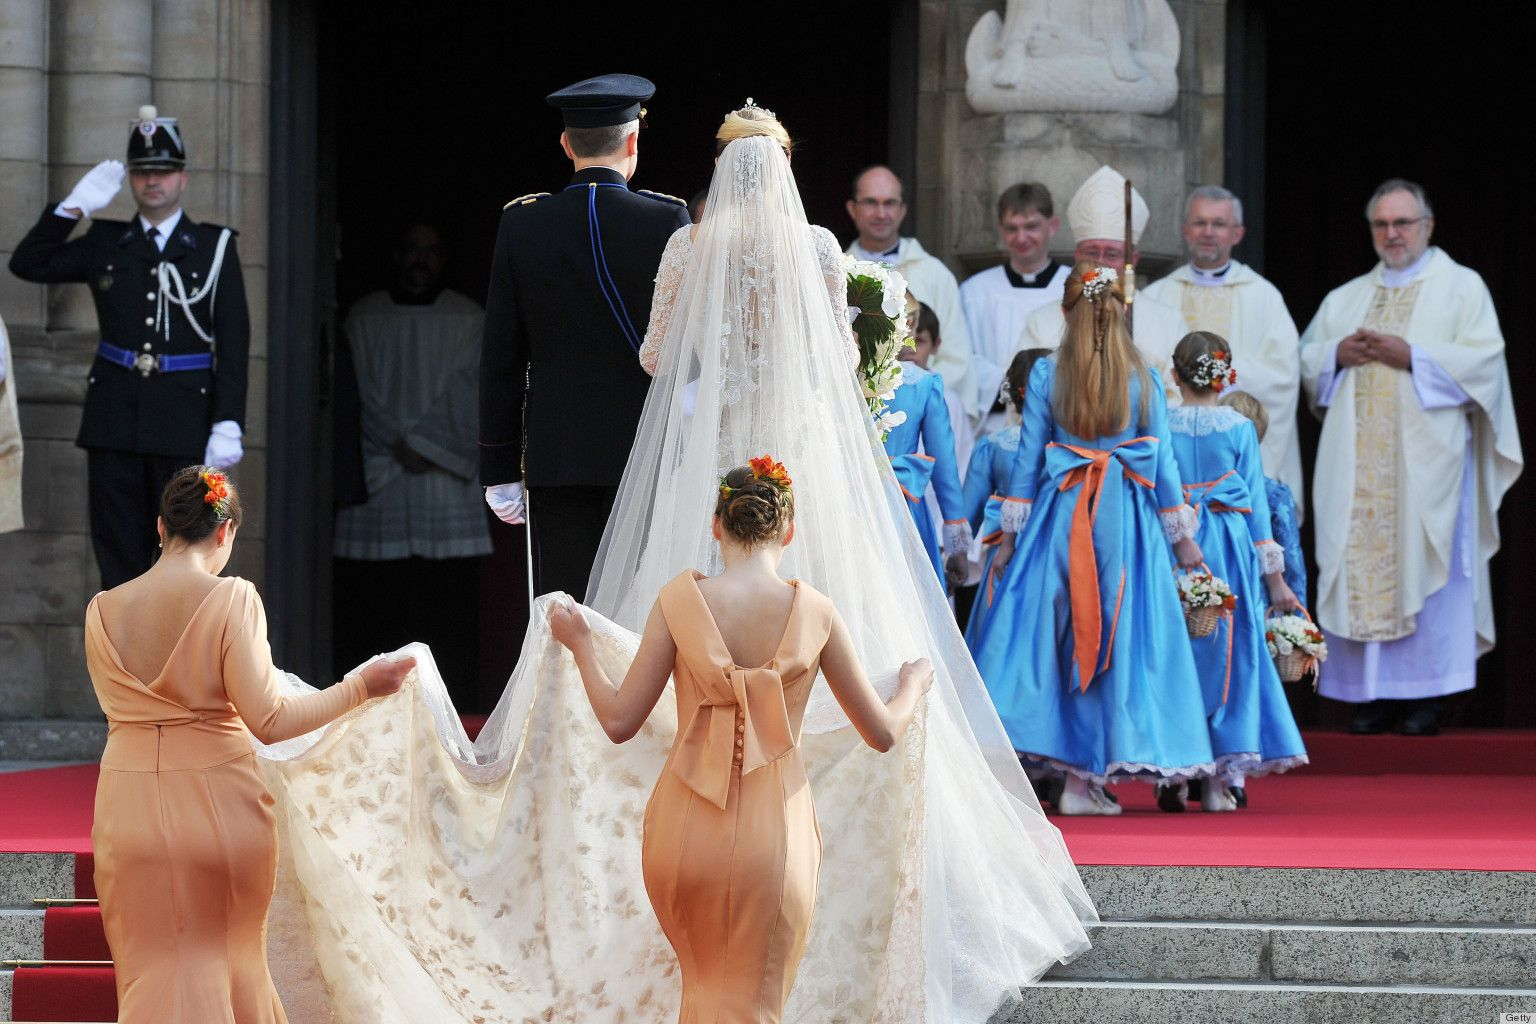 PHOTOS: Prince Guillaume & Stephanie De Lannoy's Glamorous Royal Wedding In Luxembourg